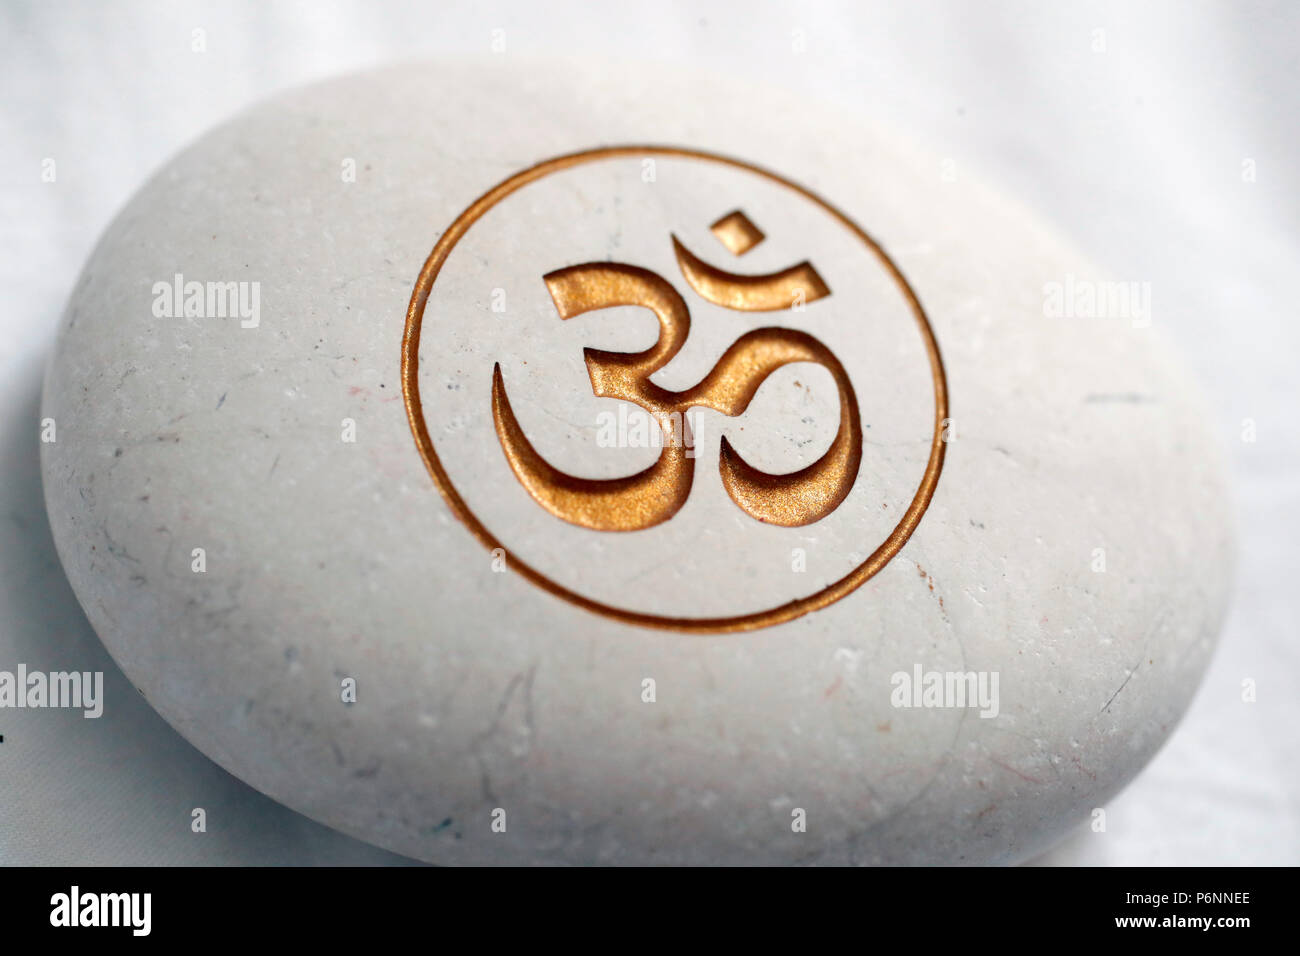 The Om Or Aum Symbol Of Hinduism And Buddhism On A White Stone Stock